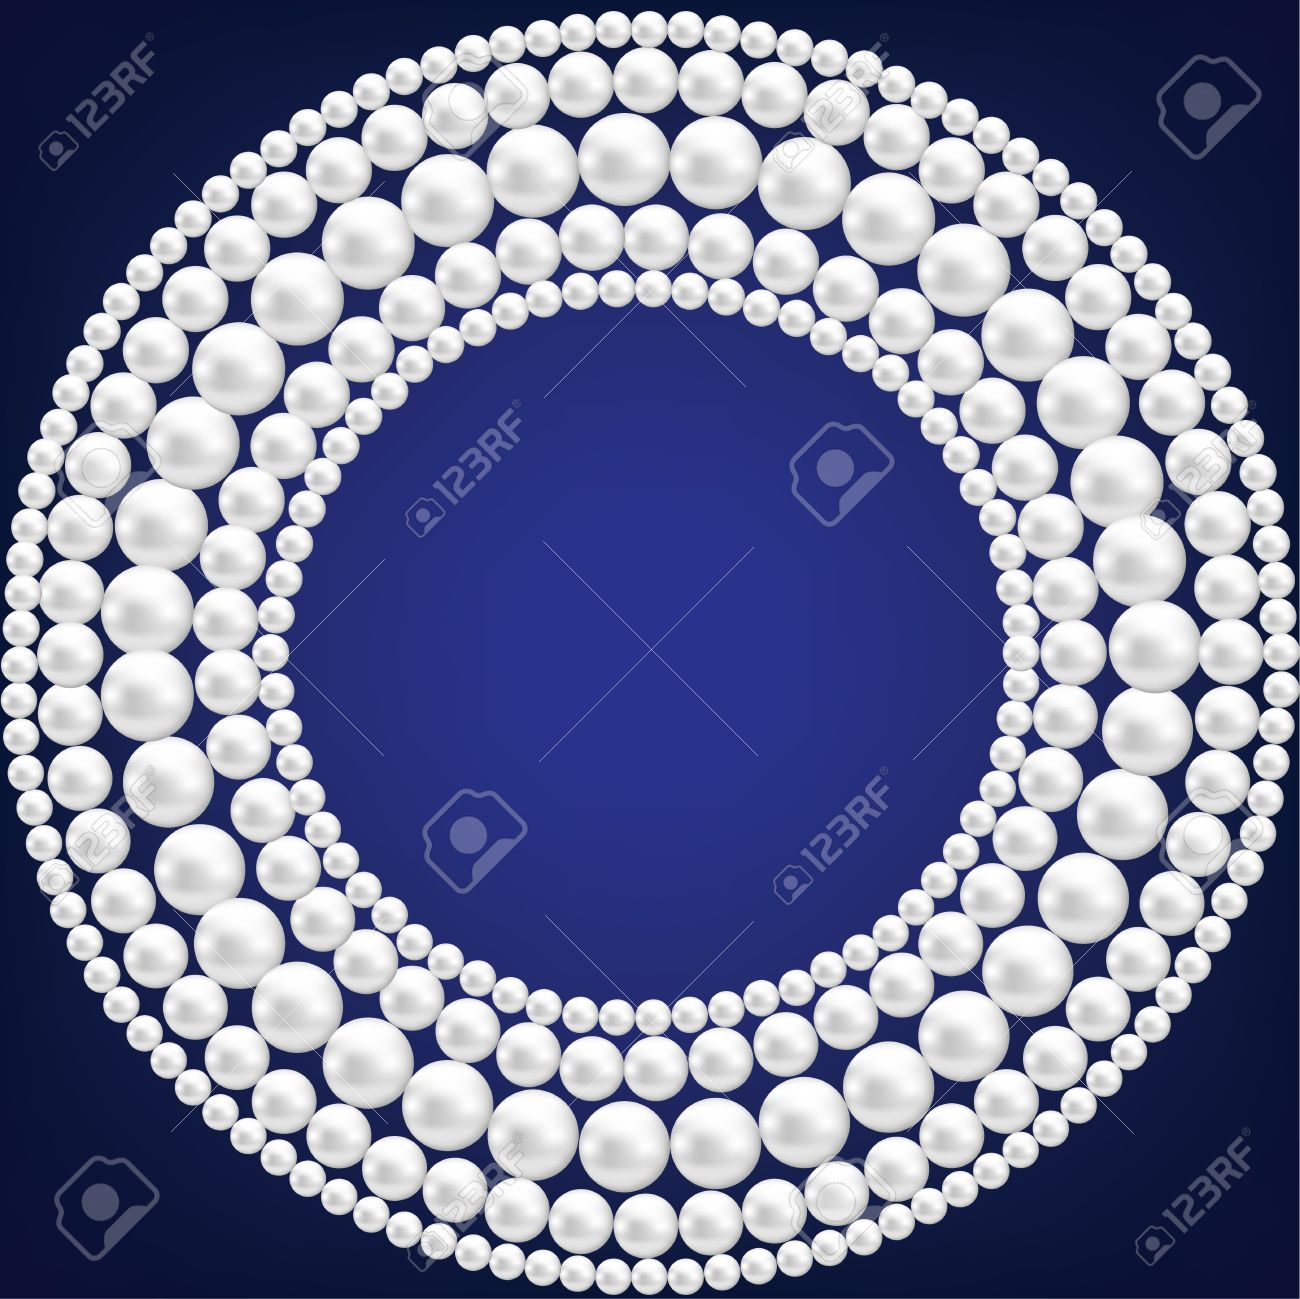 Dark blue background with pearl necklace Stock Vector - 20360494